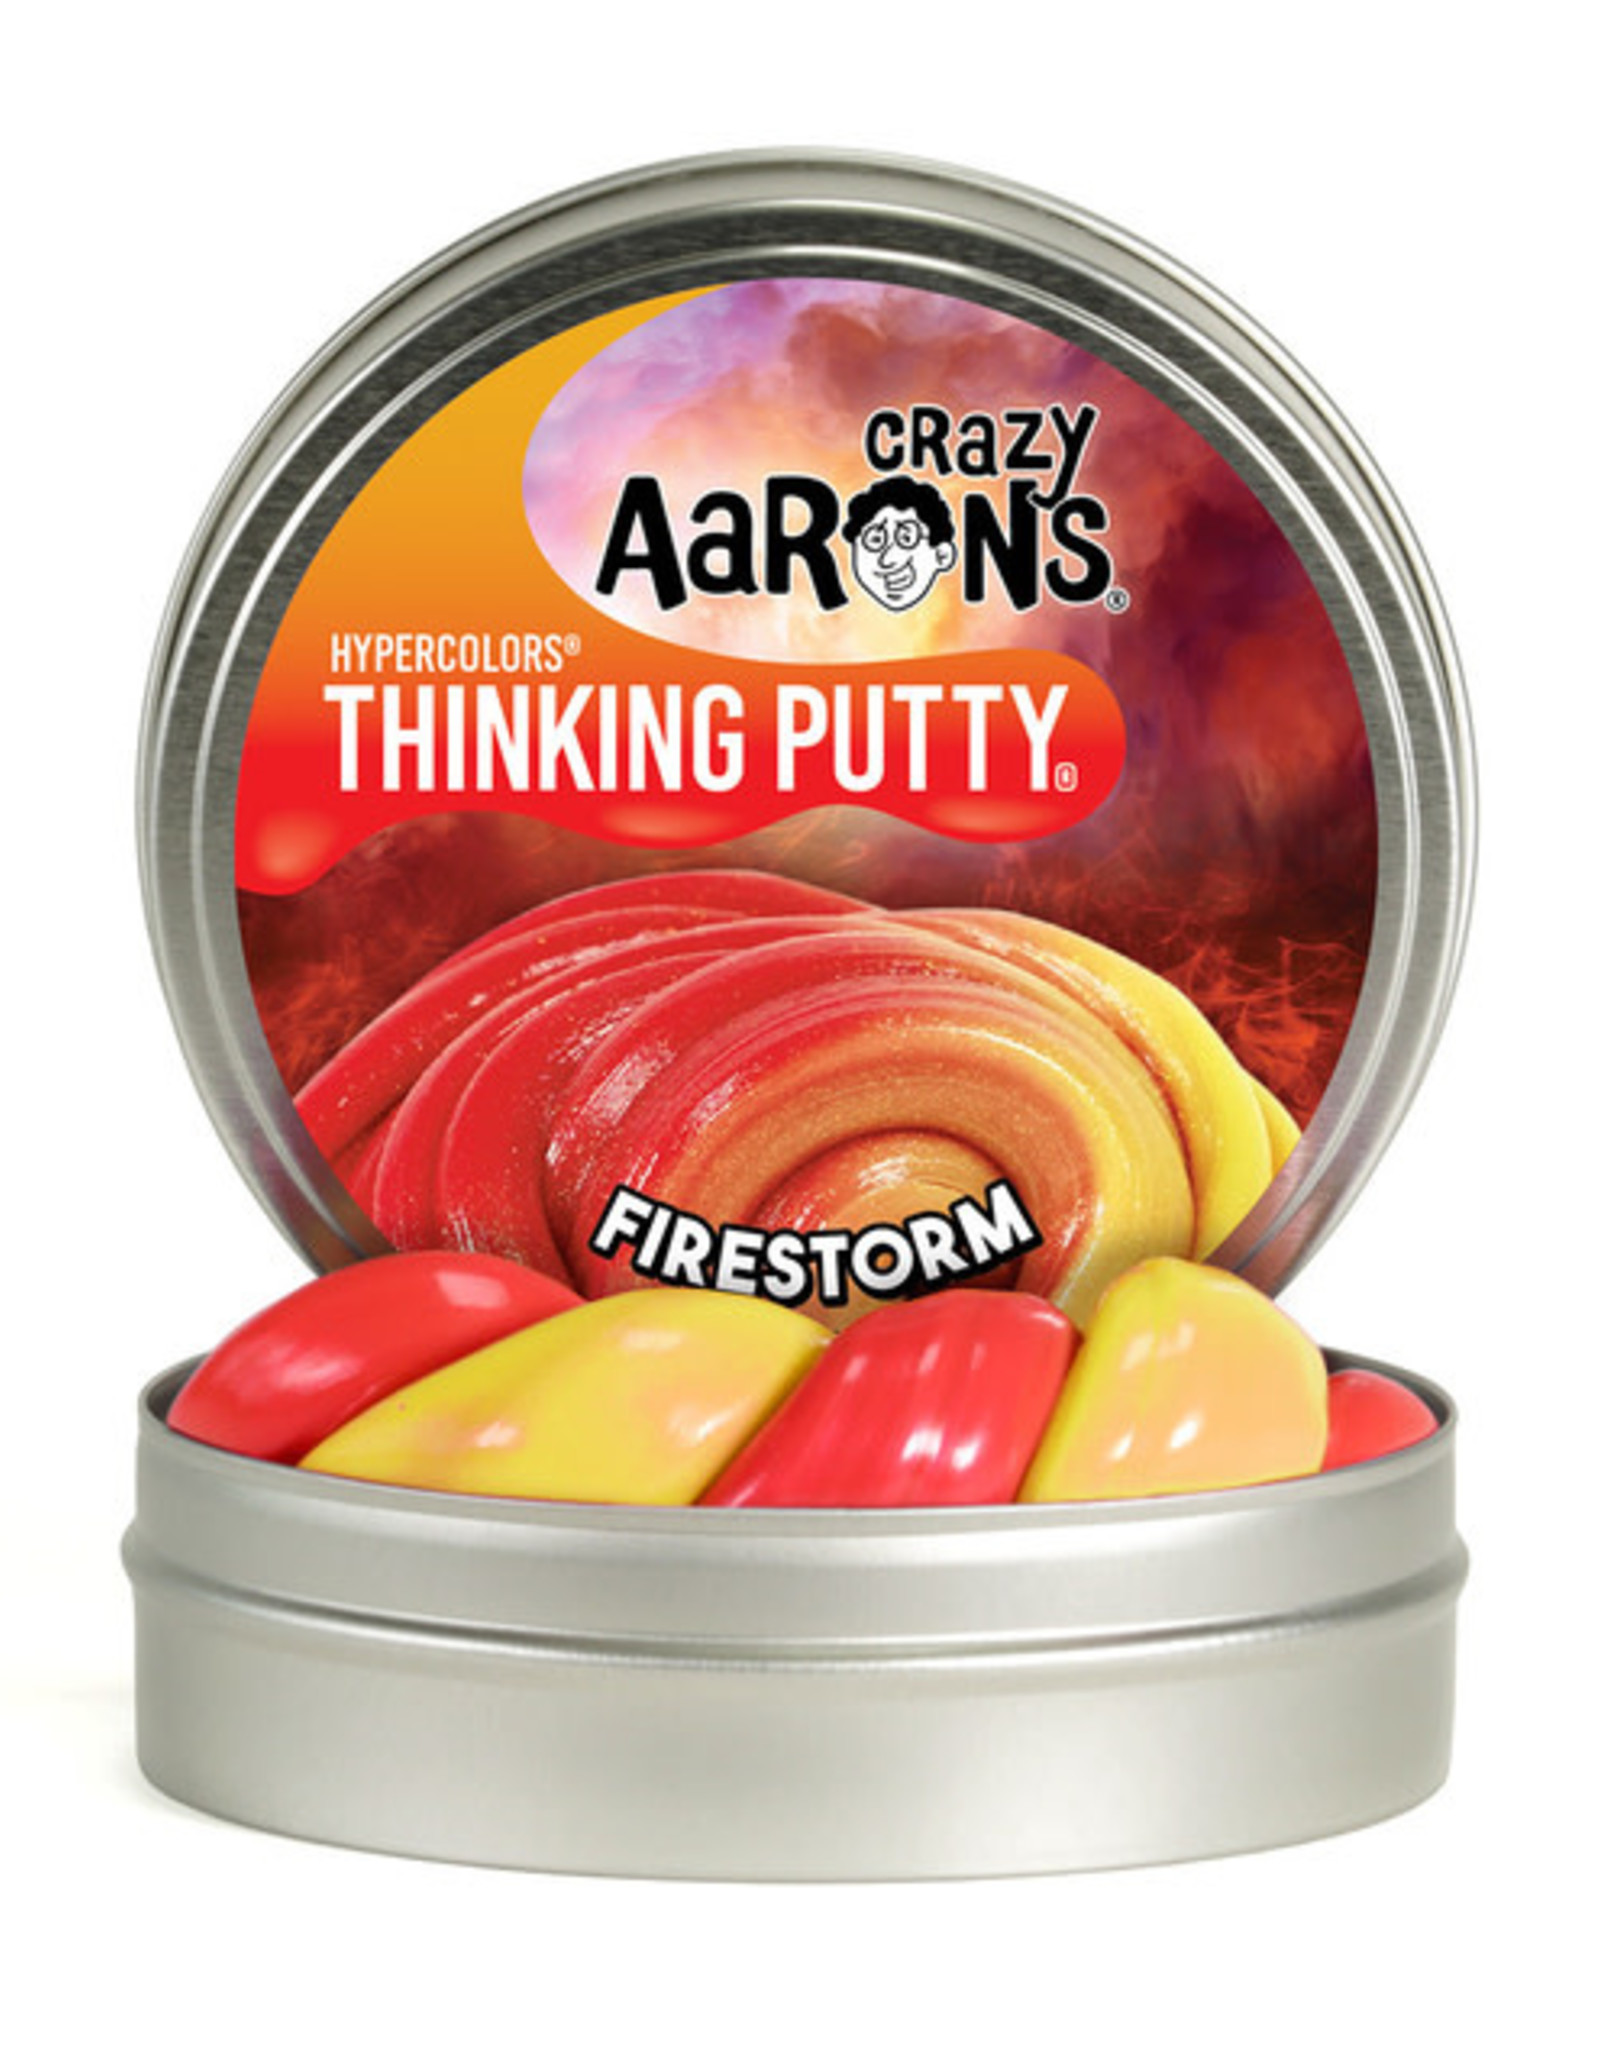 """Crazy Aaron's Thinking Putty 4"""" Fire Storm - Heat Sensitive Hypercolor"""